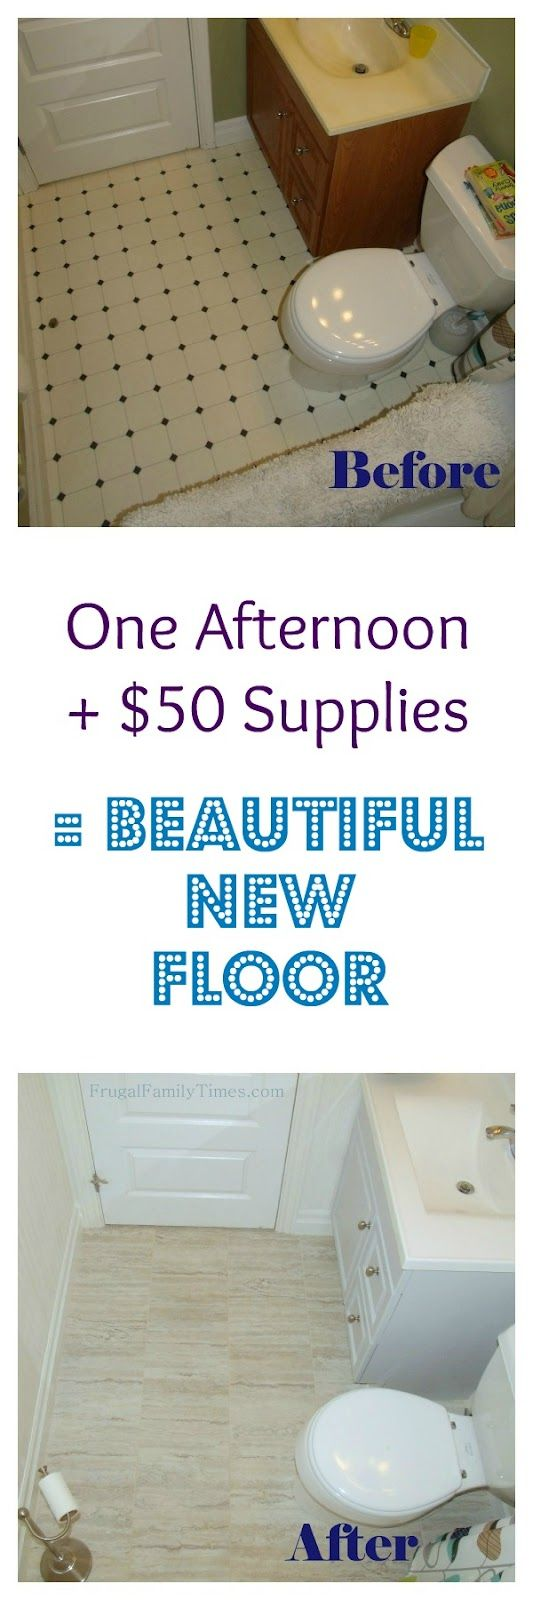 $50 Plus One Afternoon U003d Beautiful Tile Floor. Easy, Inexpensive And  Beautiful! How